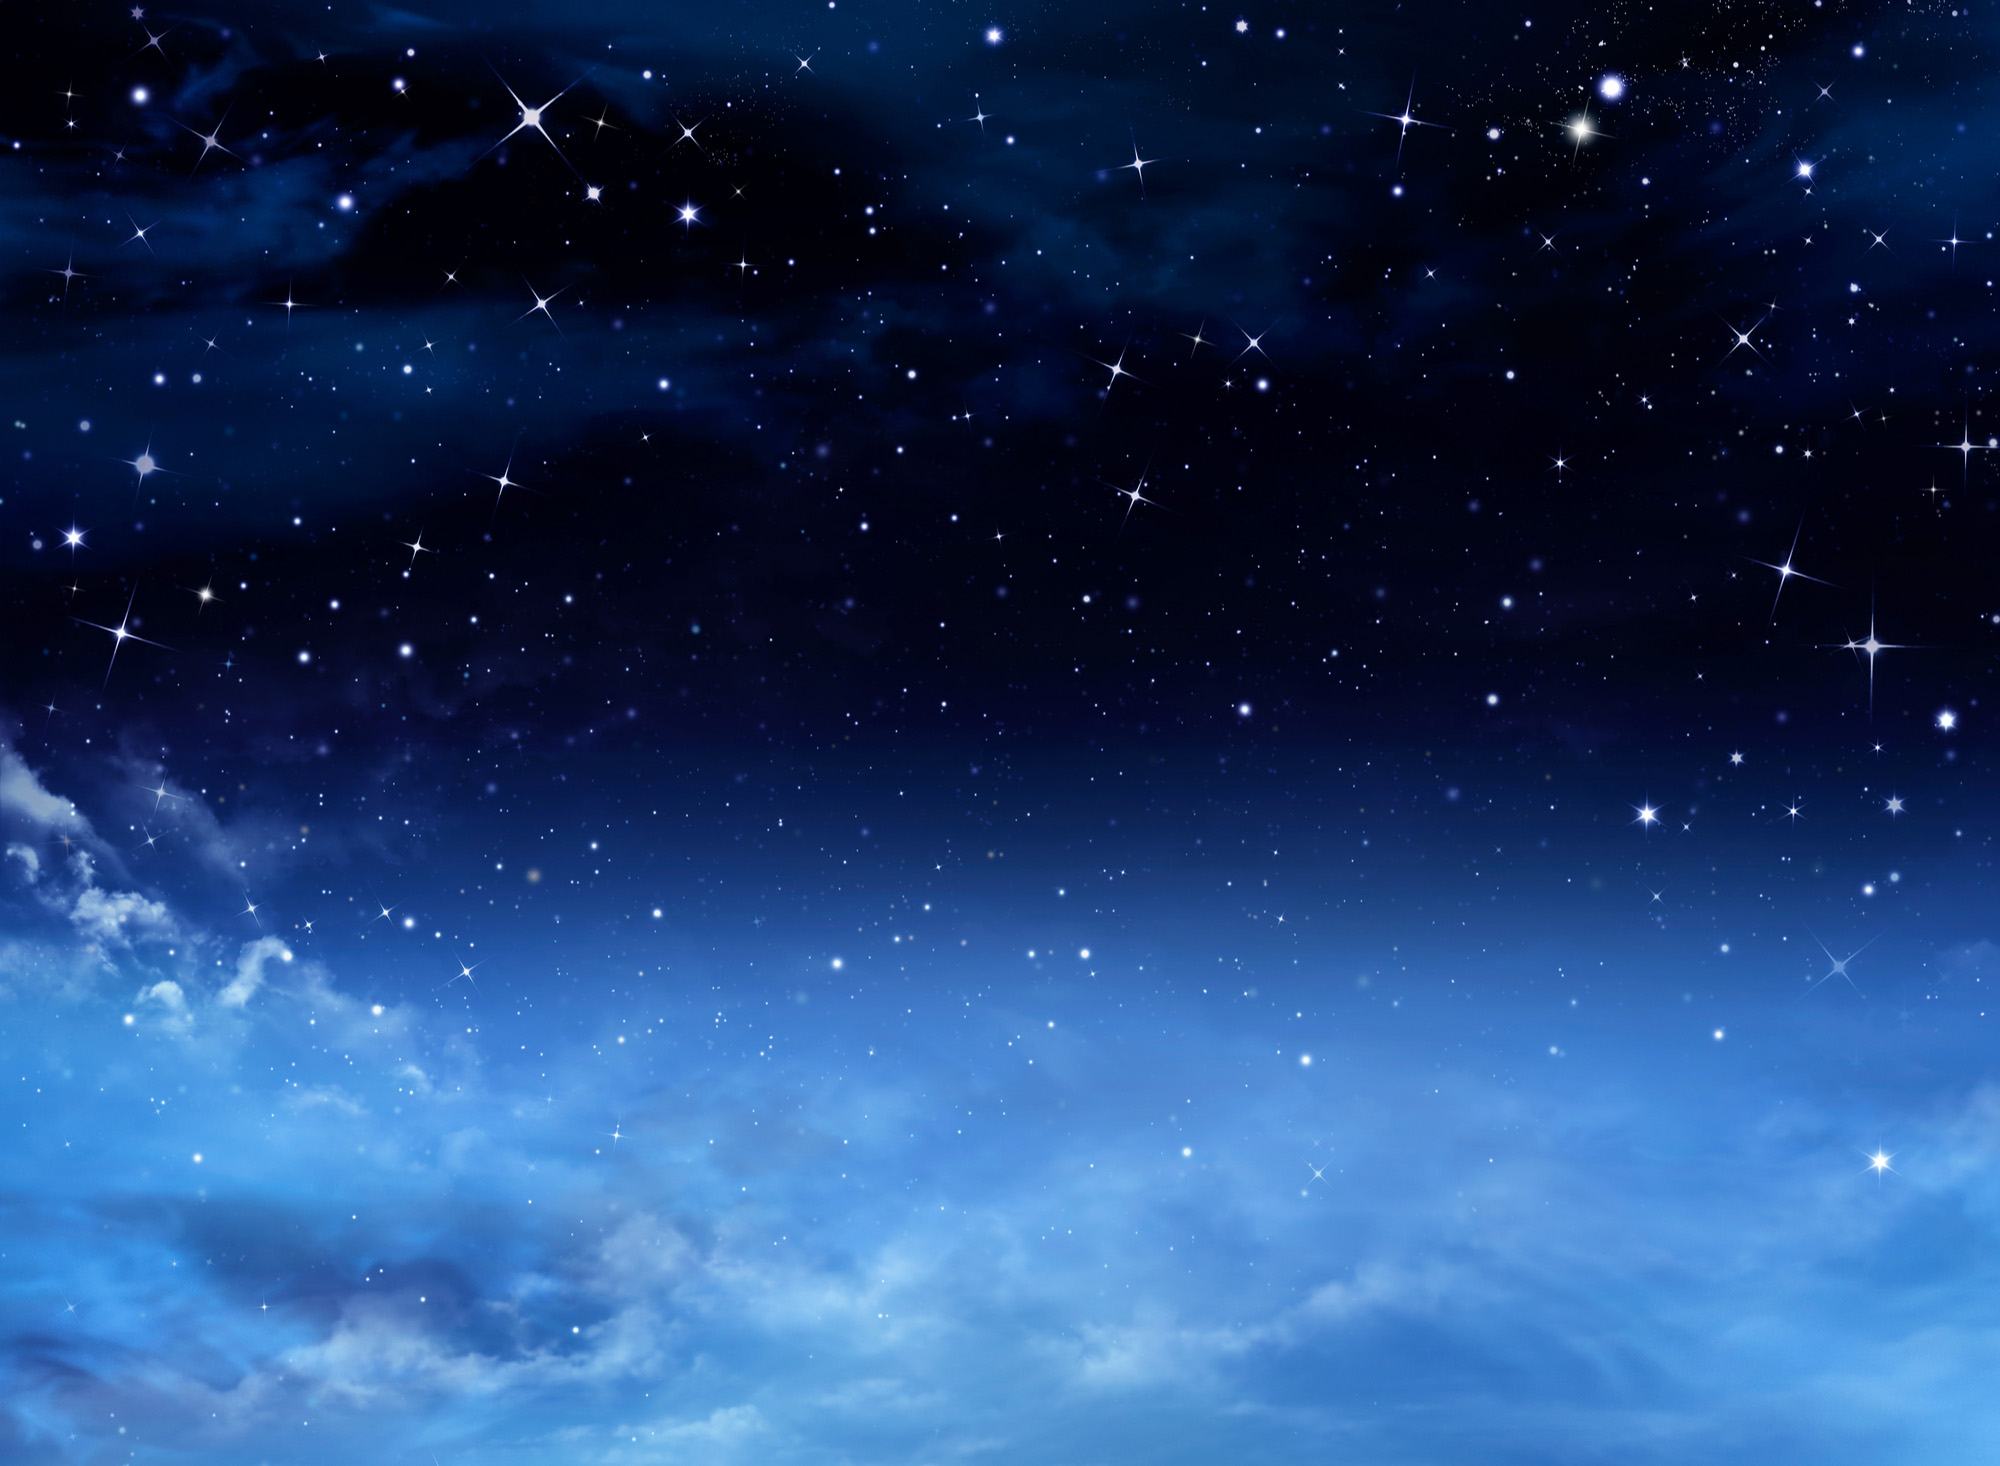 Night sky with stars-72 ppi